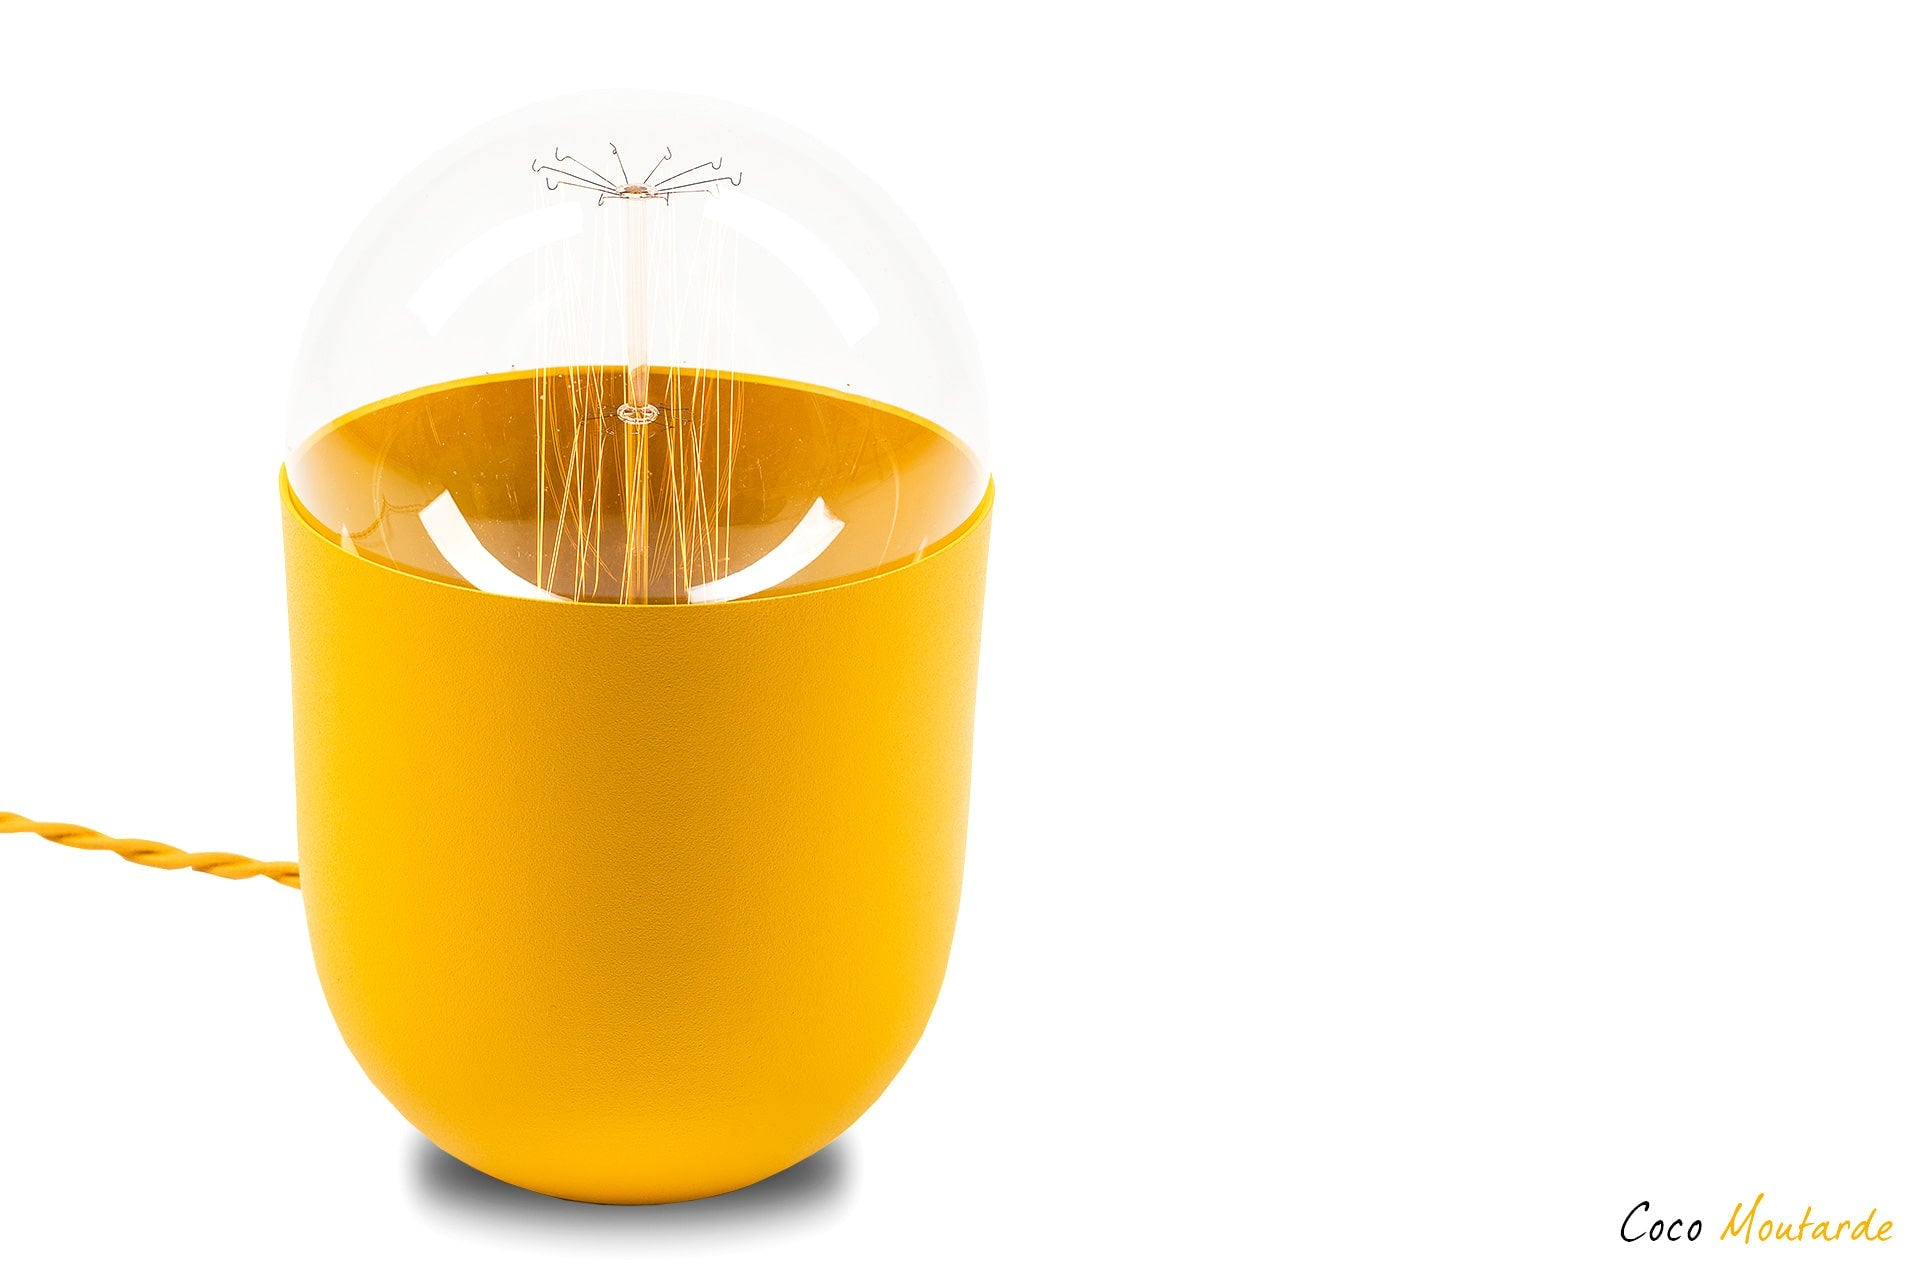 lampe de table Coco couleur jaune moutarde by Mickaël Koska-en vente sur PARIDEO design durable